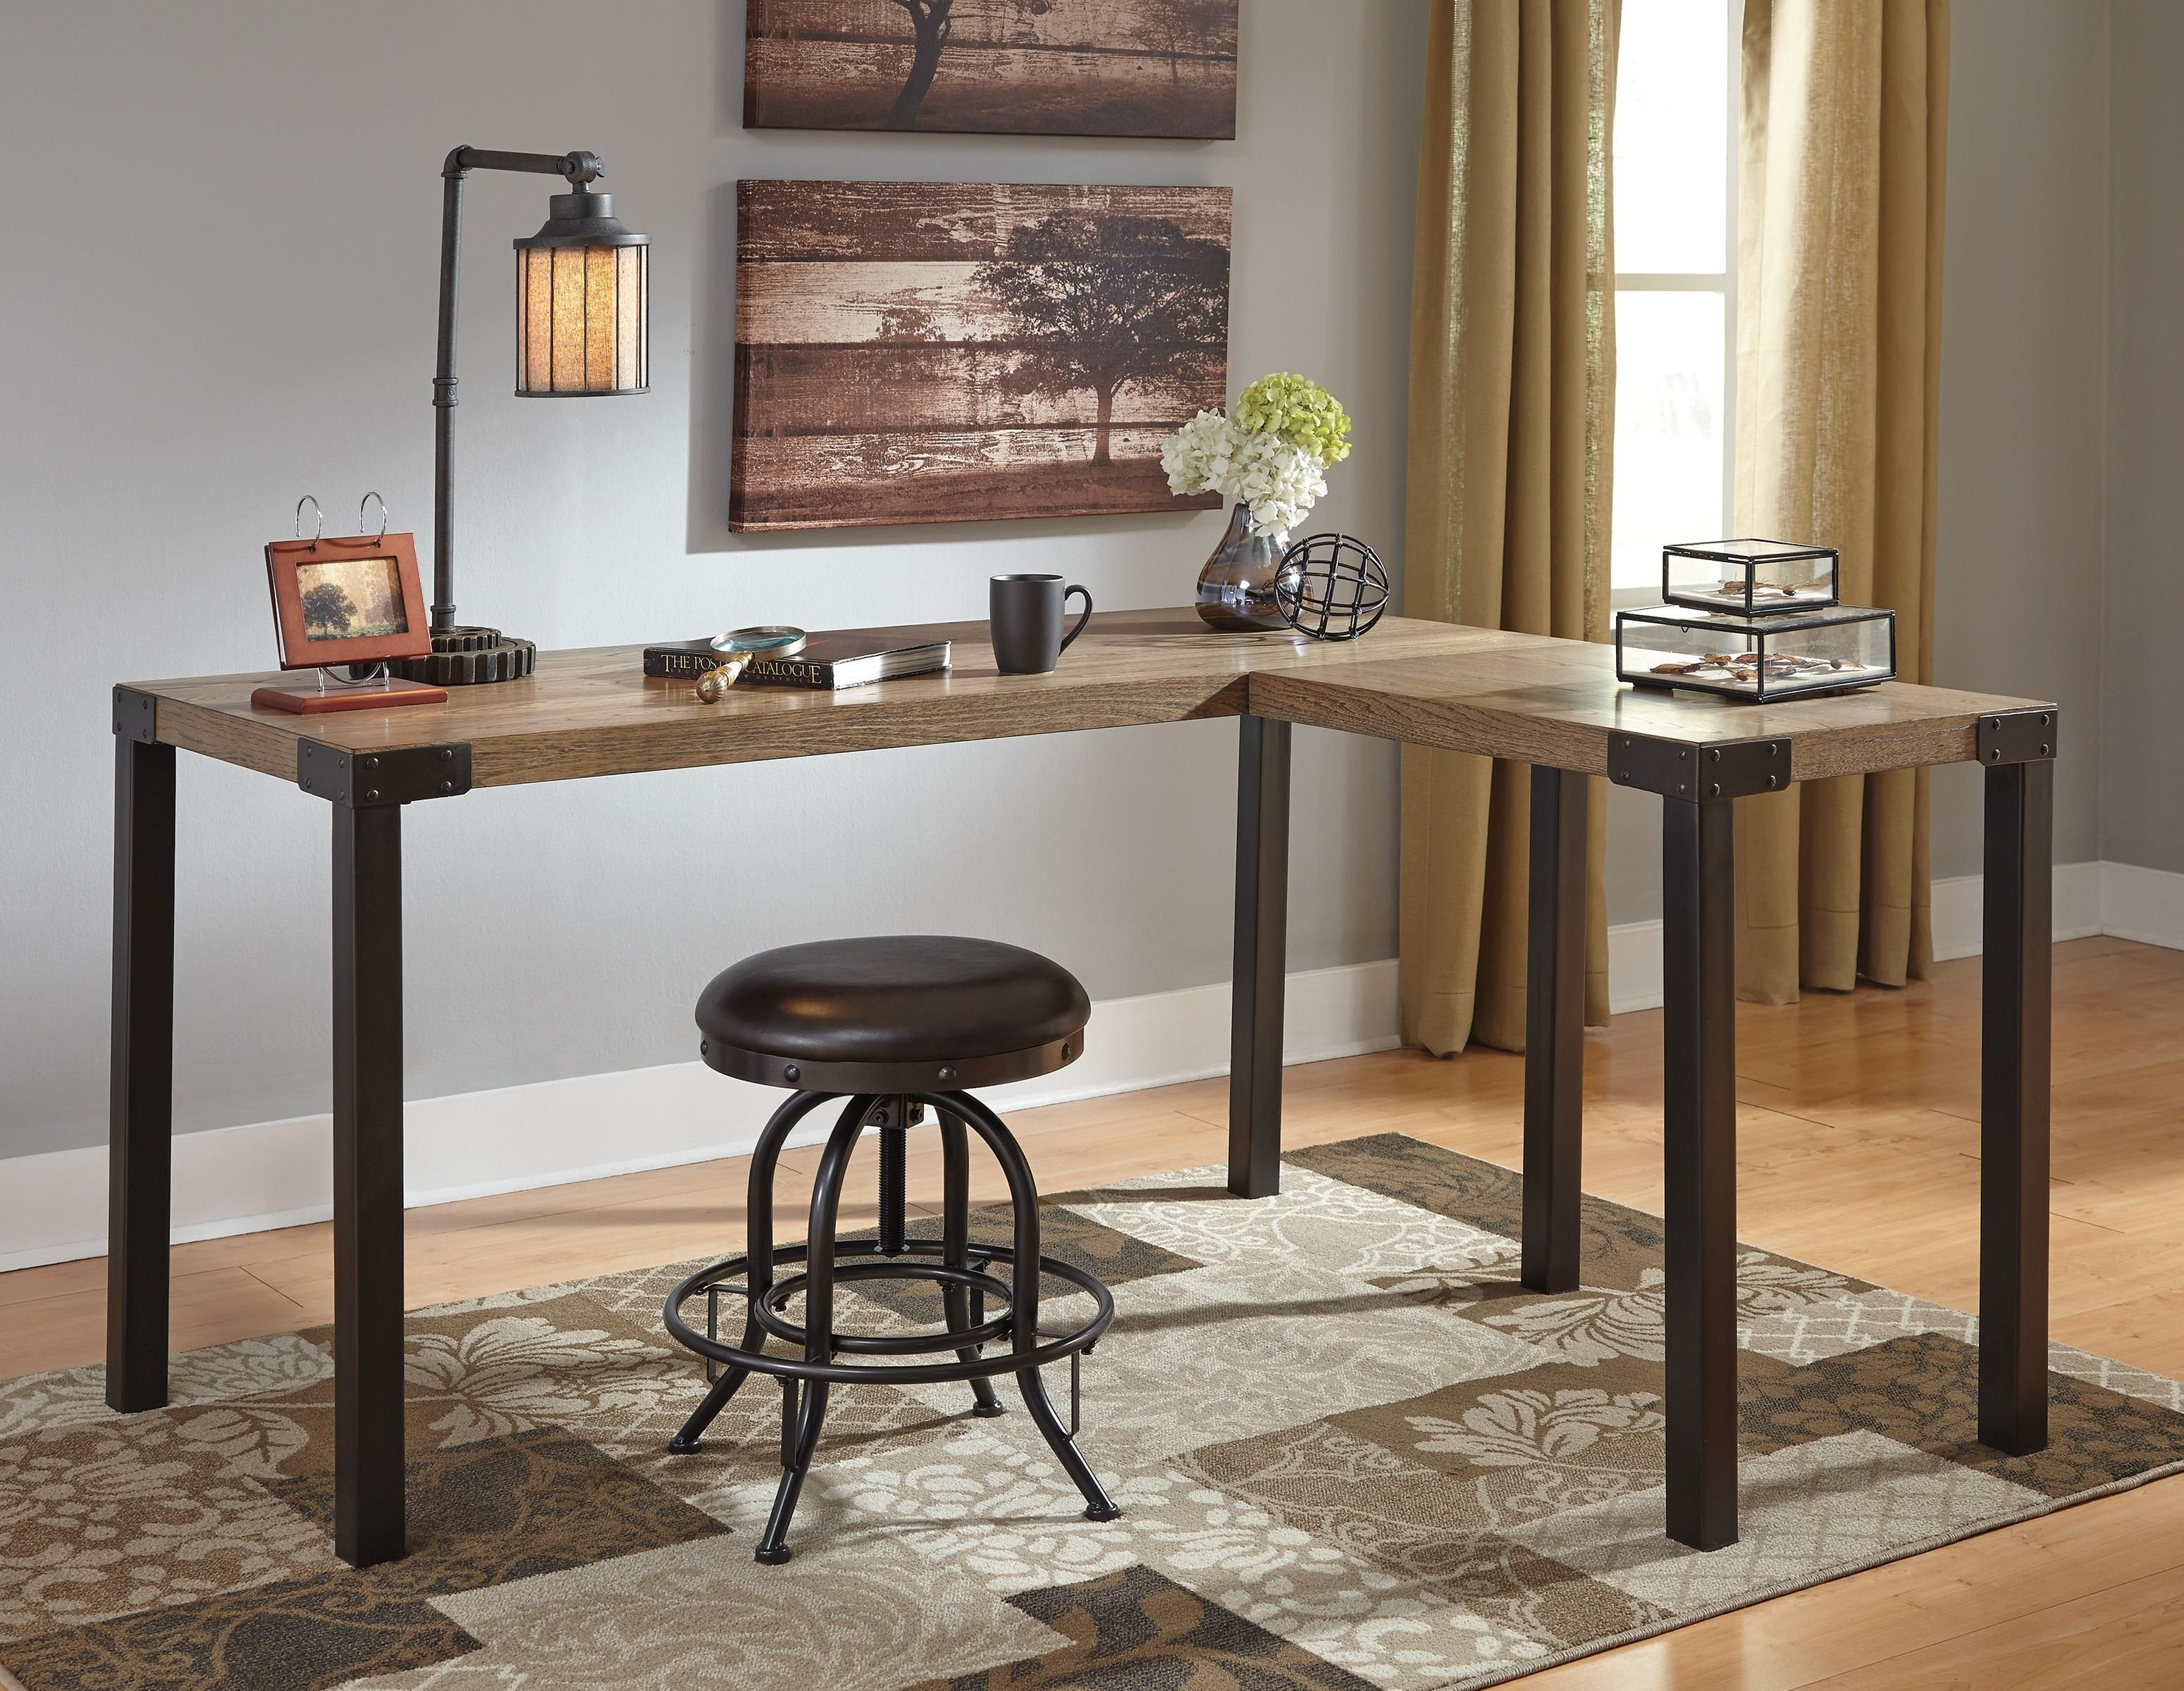 style furniture industrial this costco reception insight out world chair office of desk top